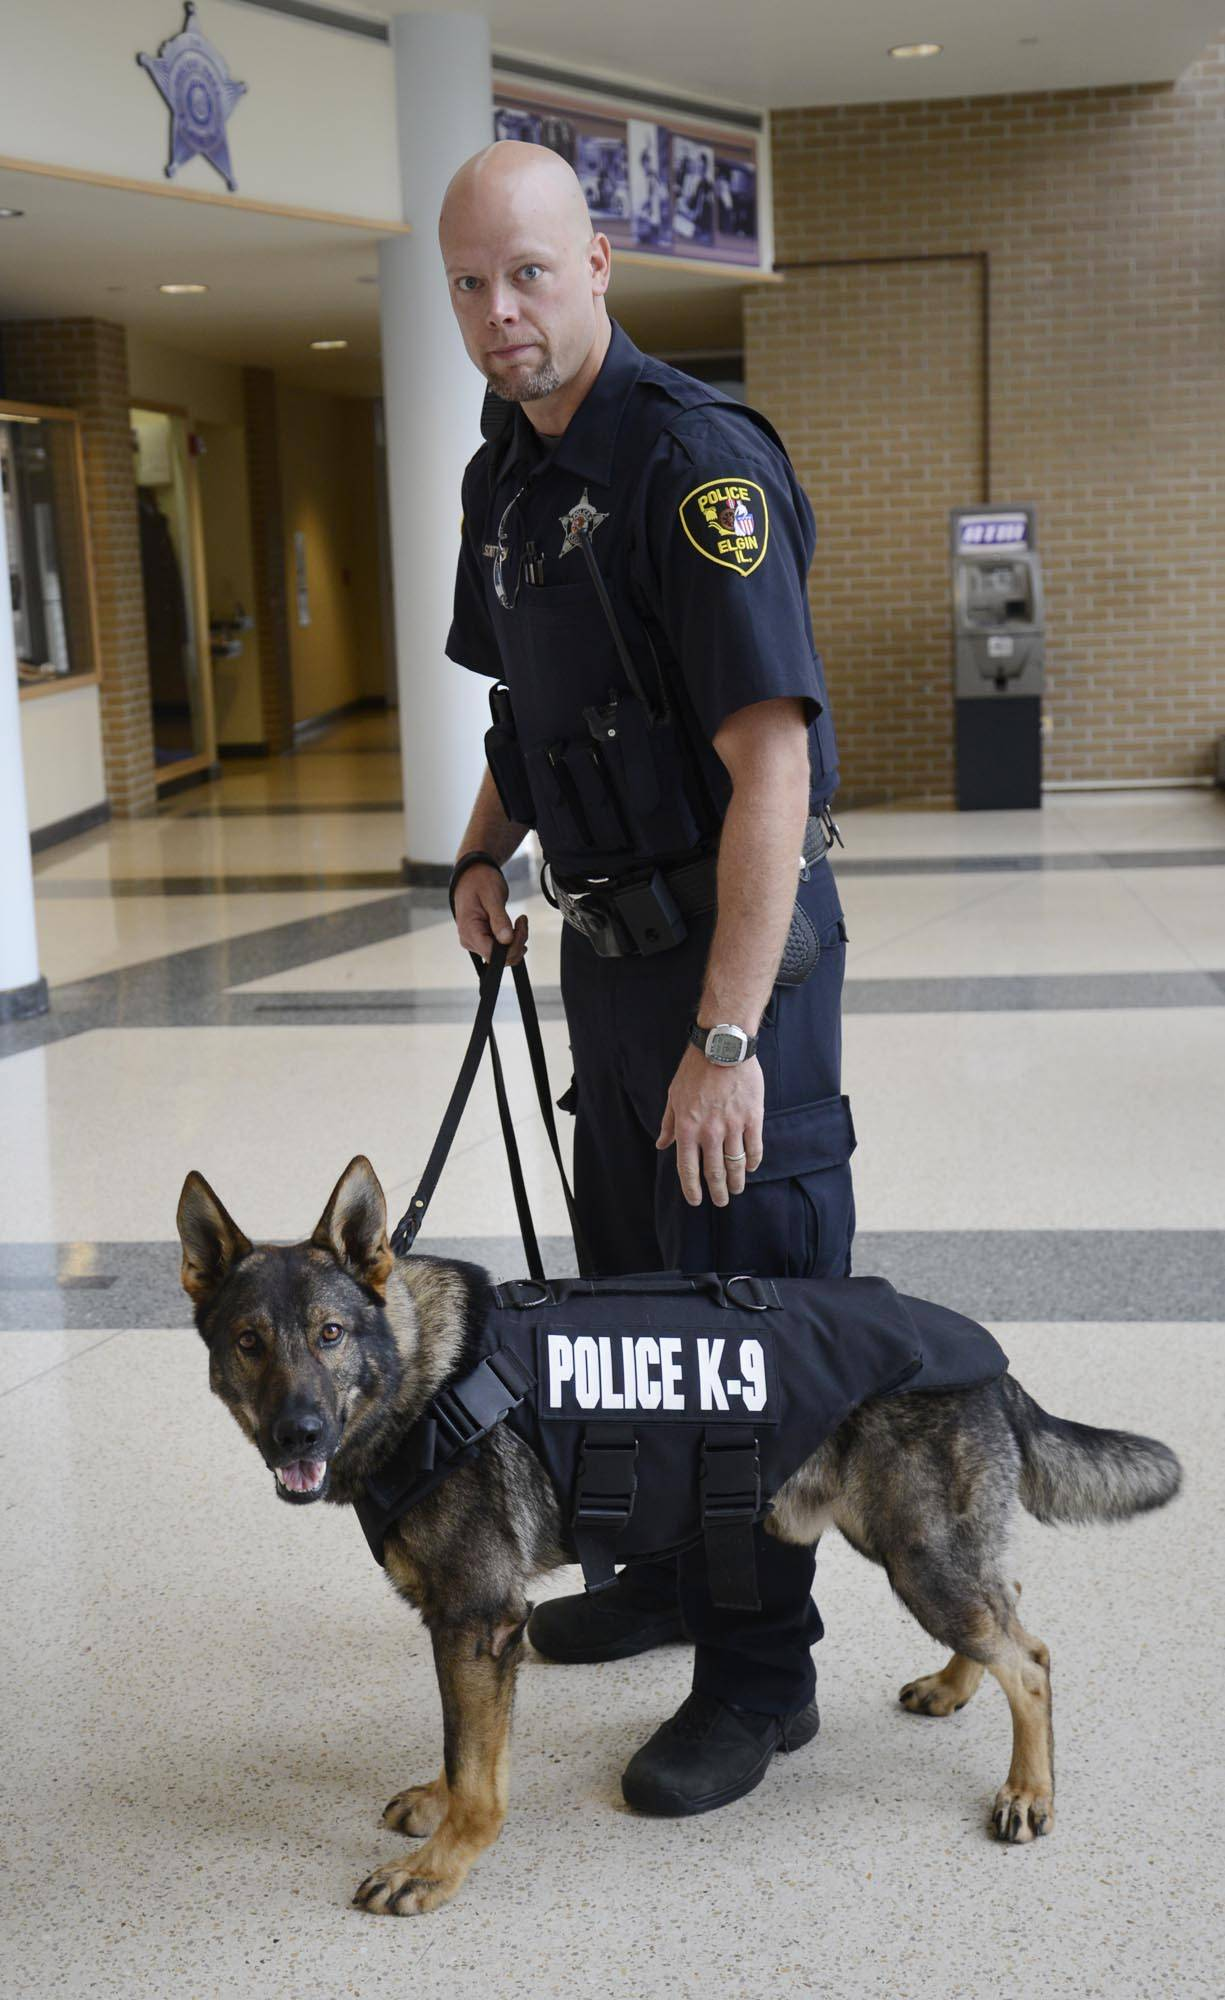 Elgin Police Officer Chad Schuttrow with K9 Colt, who received a donated ballistic vest through a partnership between Groupon and Vested Interest in K9s, Inc. Colt is a German shepherd.